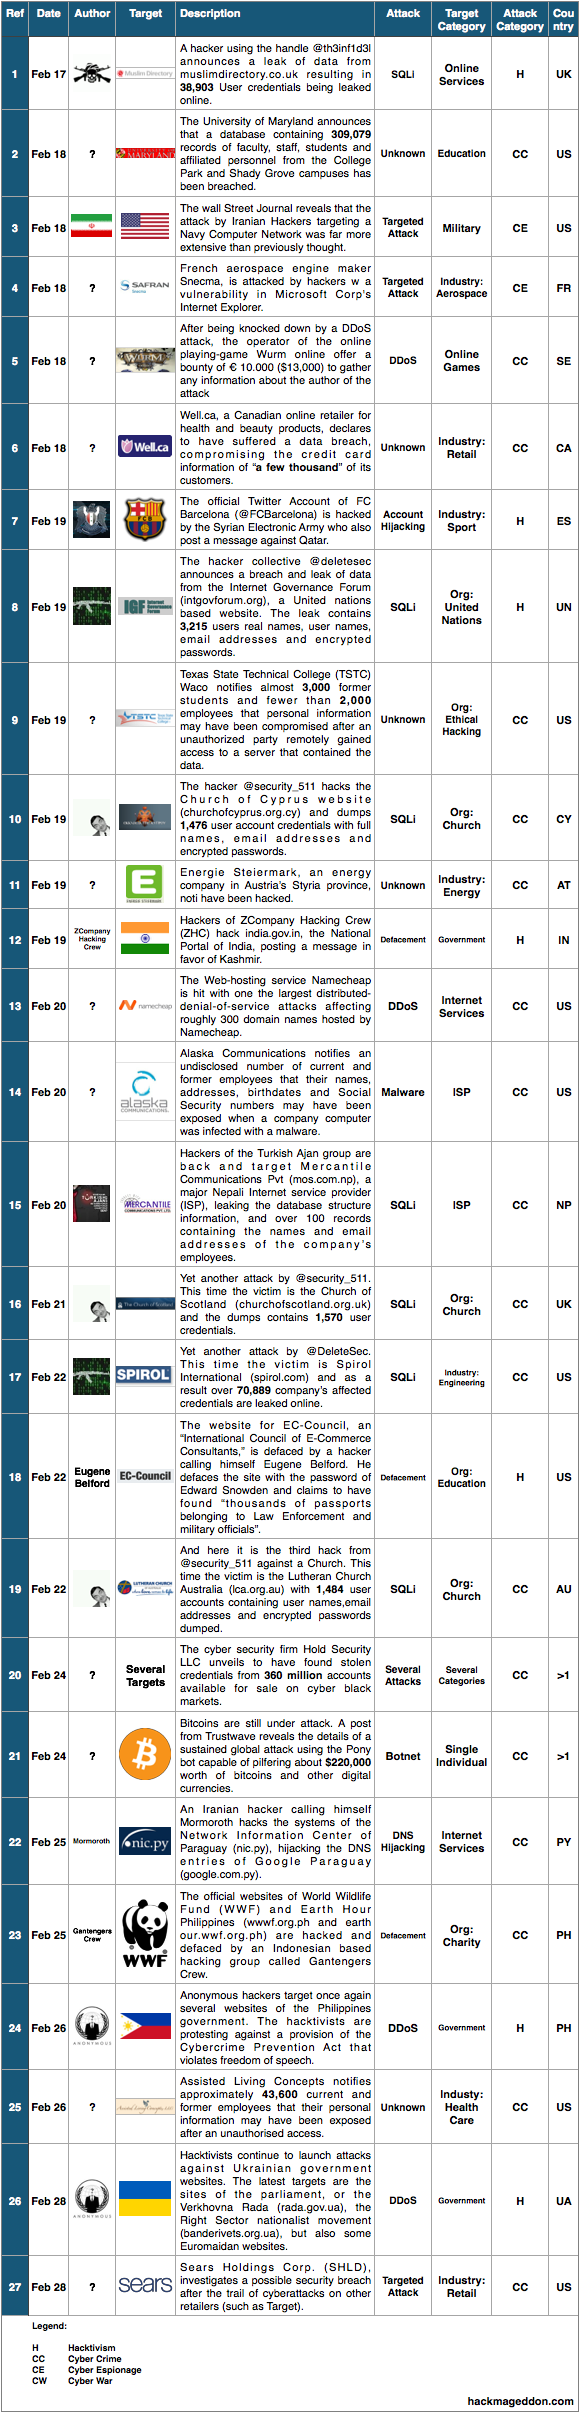 16-28 Feb 2014 Cyber Attacks Timelines